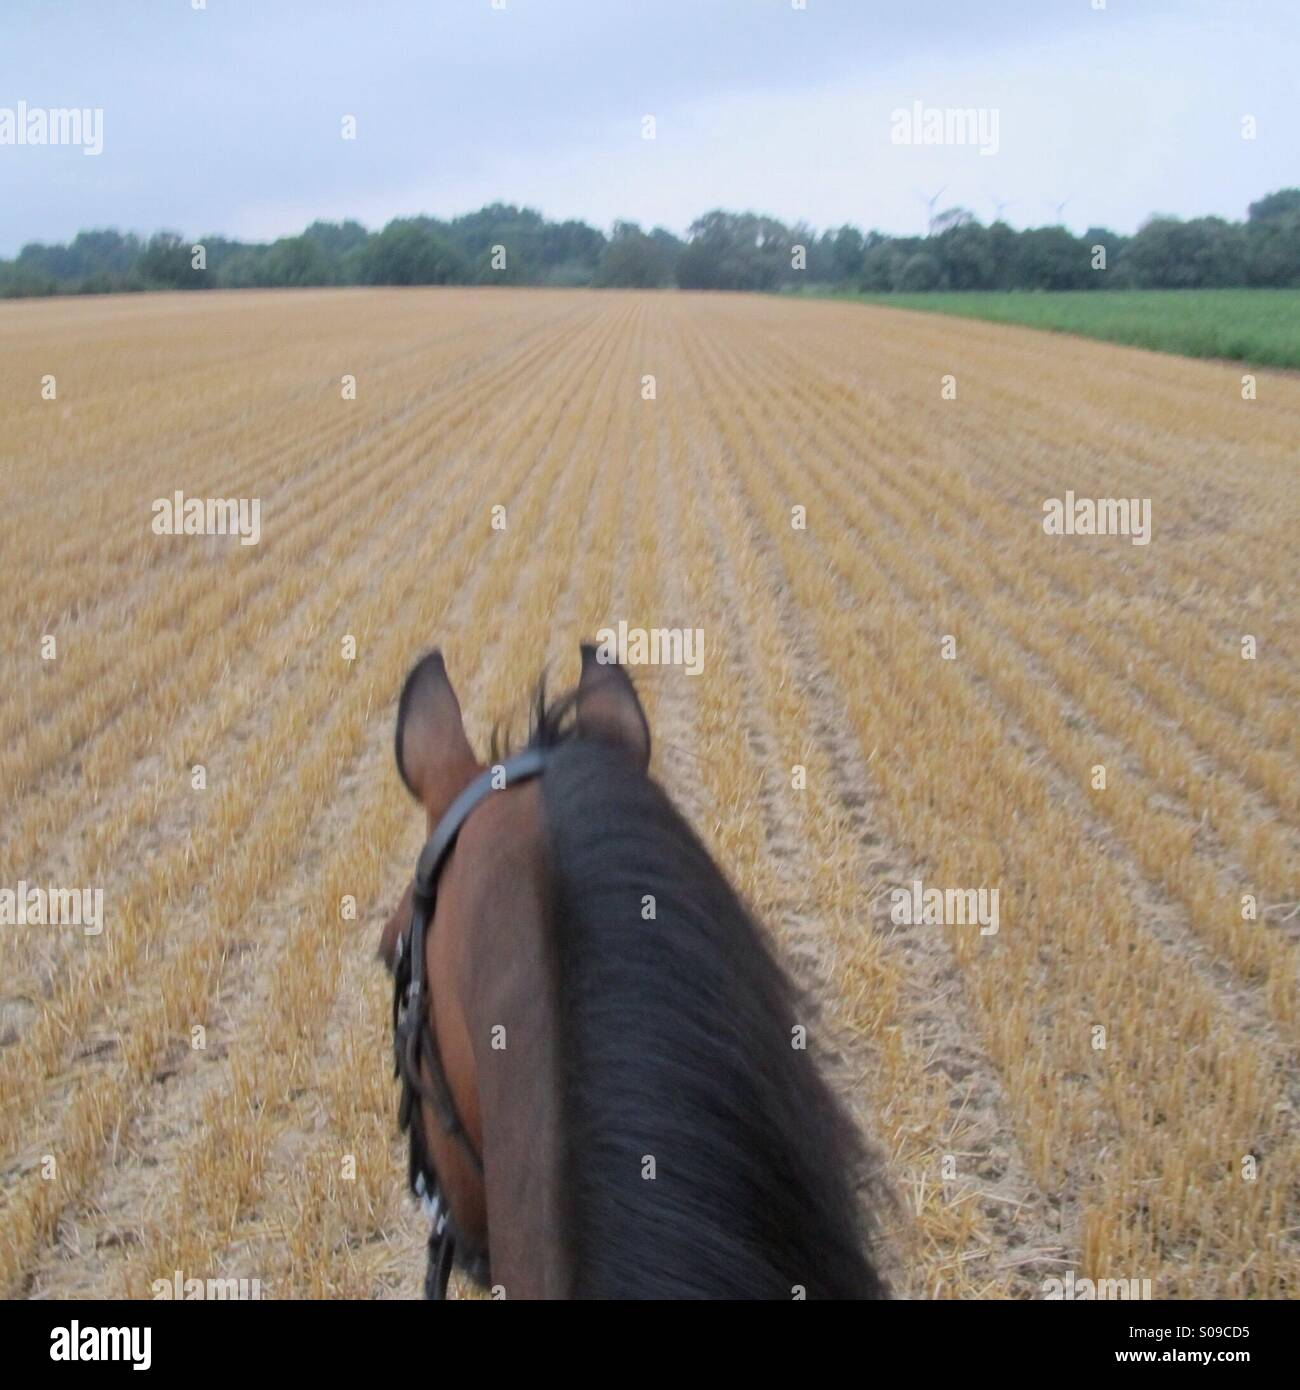 Horse riding through a stubble field - Stock Image